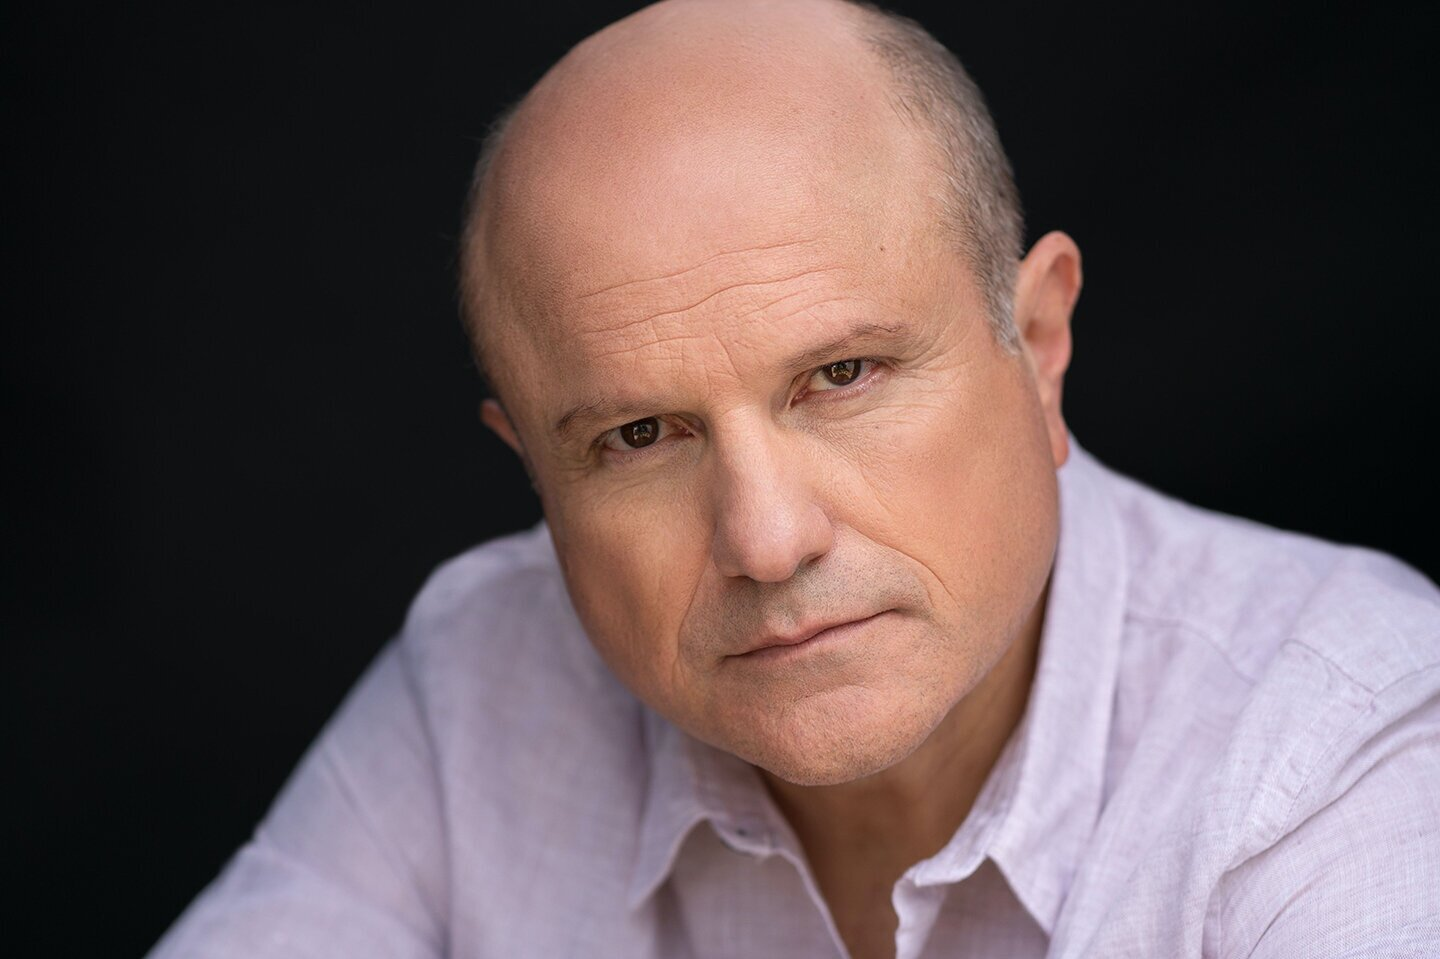 Interview with Enrico Colantoni on New York Live. - Click Here